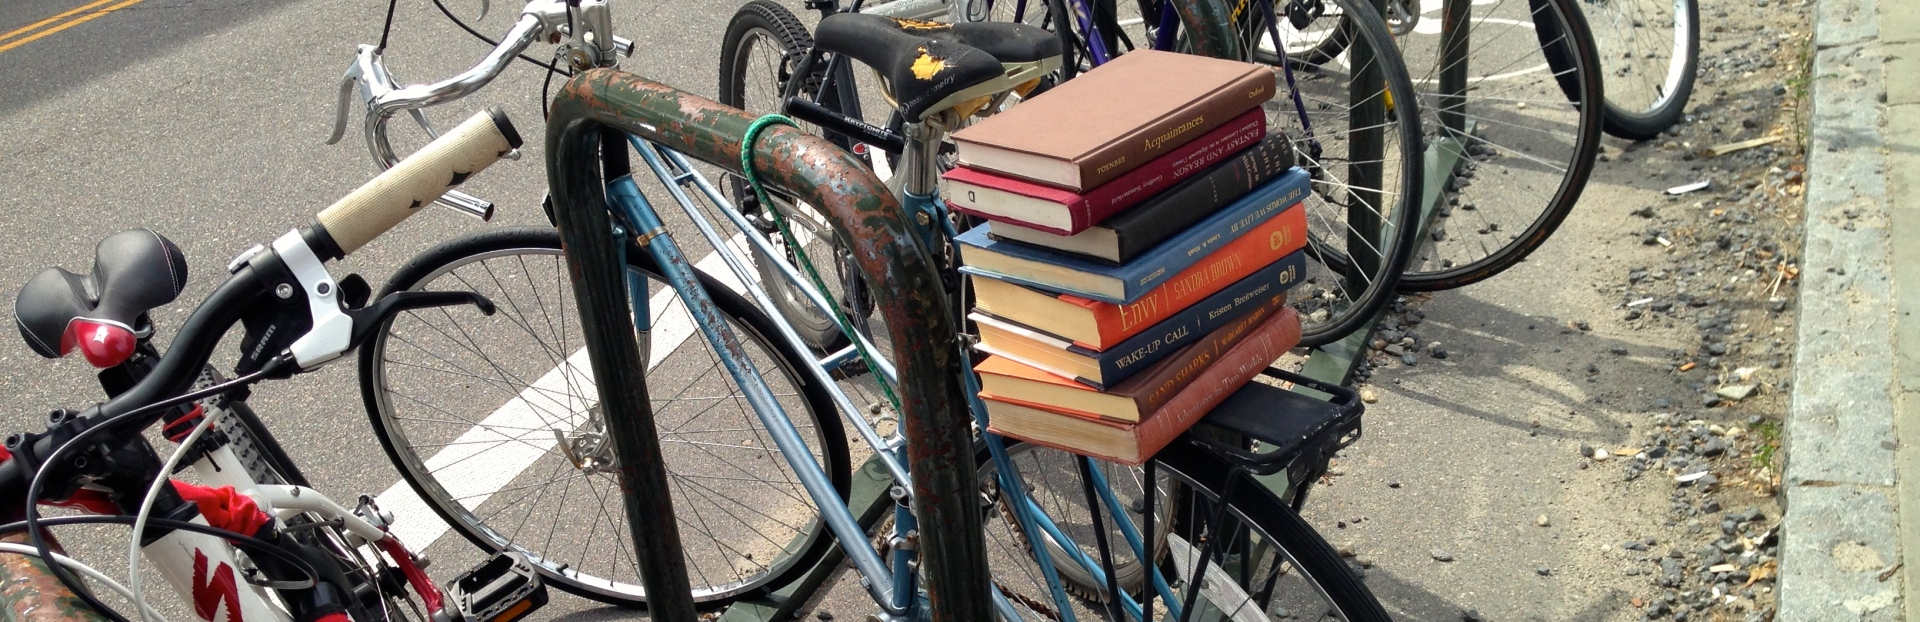 Books on Bicycle - Ready for adventure?